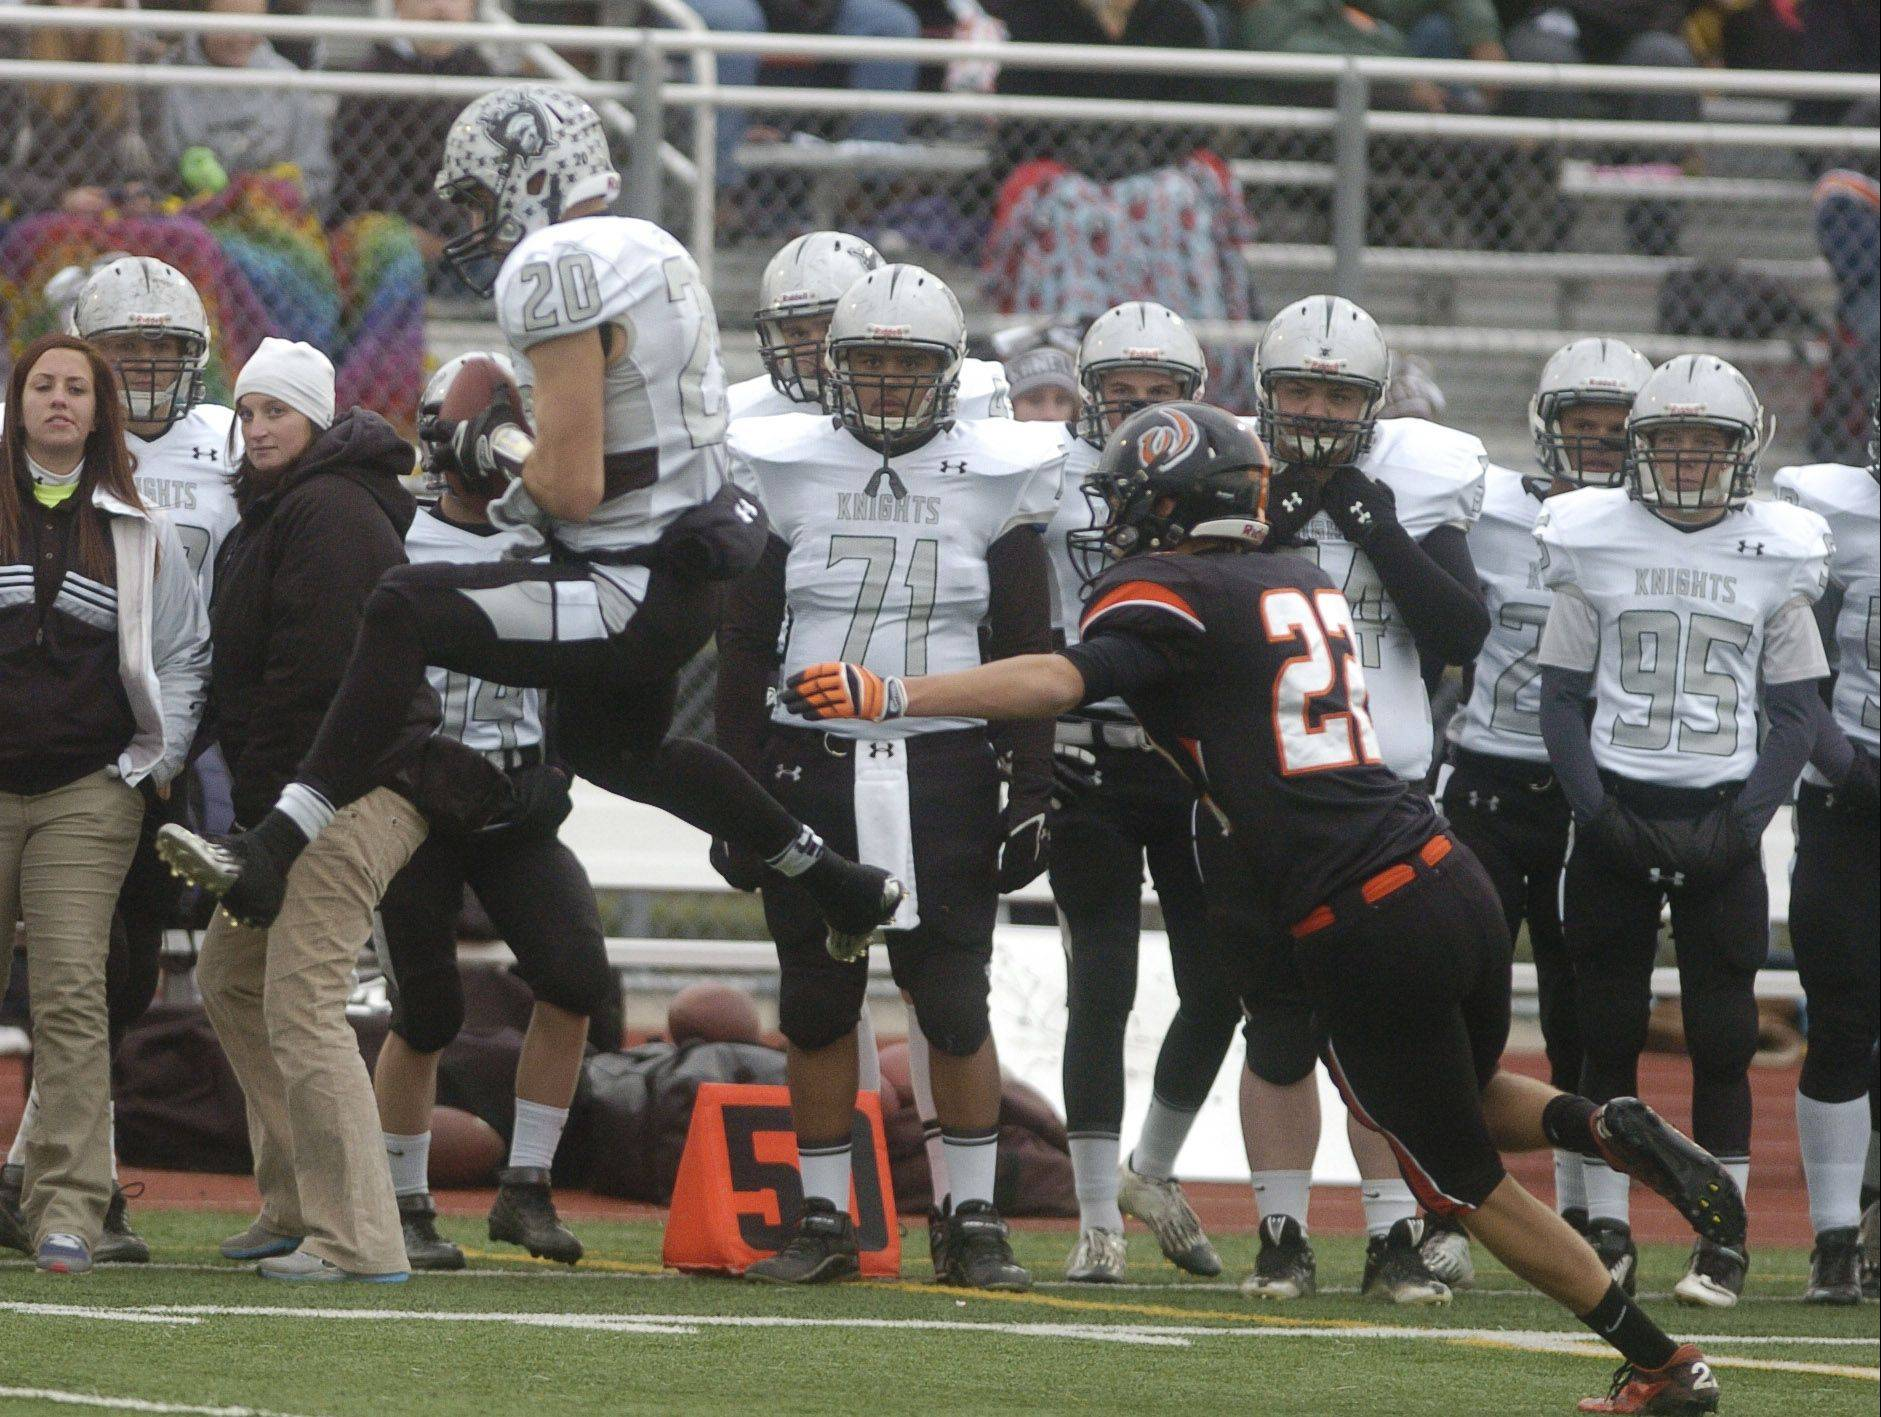 Dylan Nauert caught 7 passes for Kaneland at Lincoln-Way West in New Lenox Saturday.